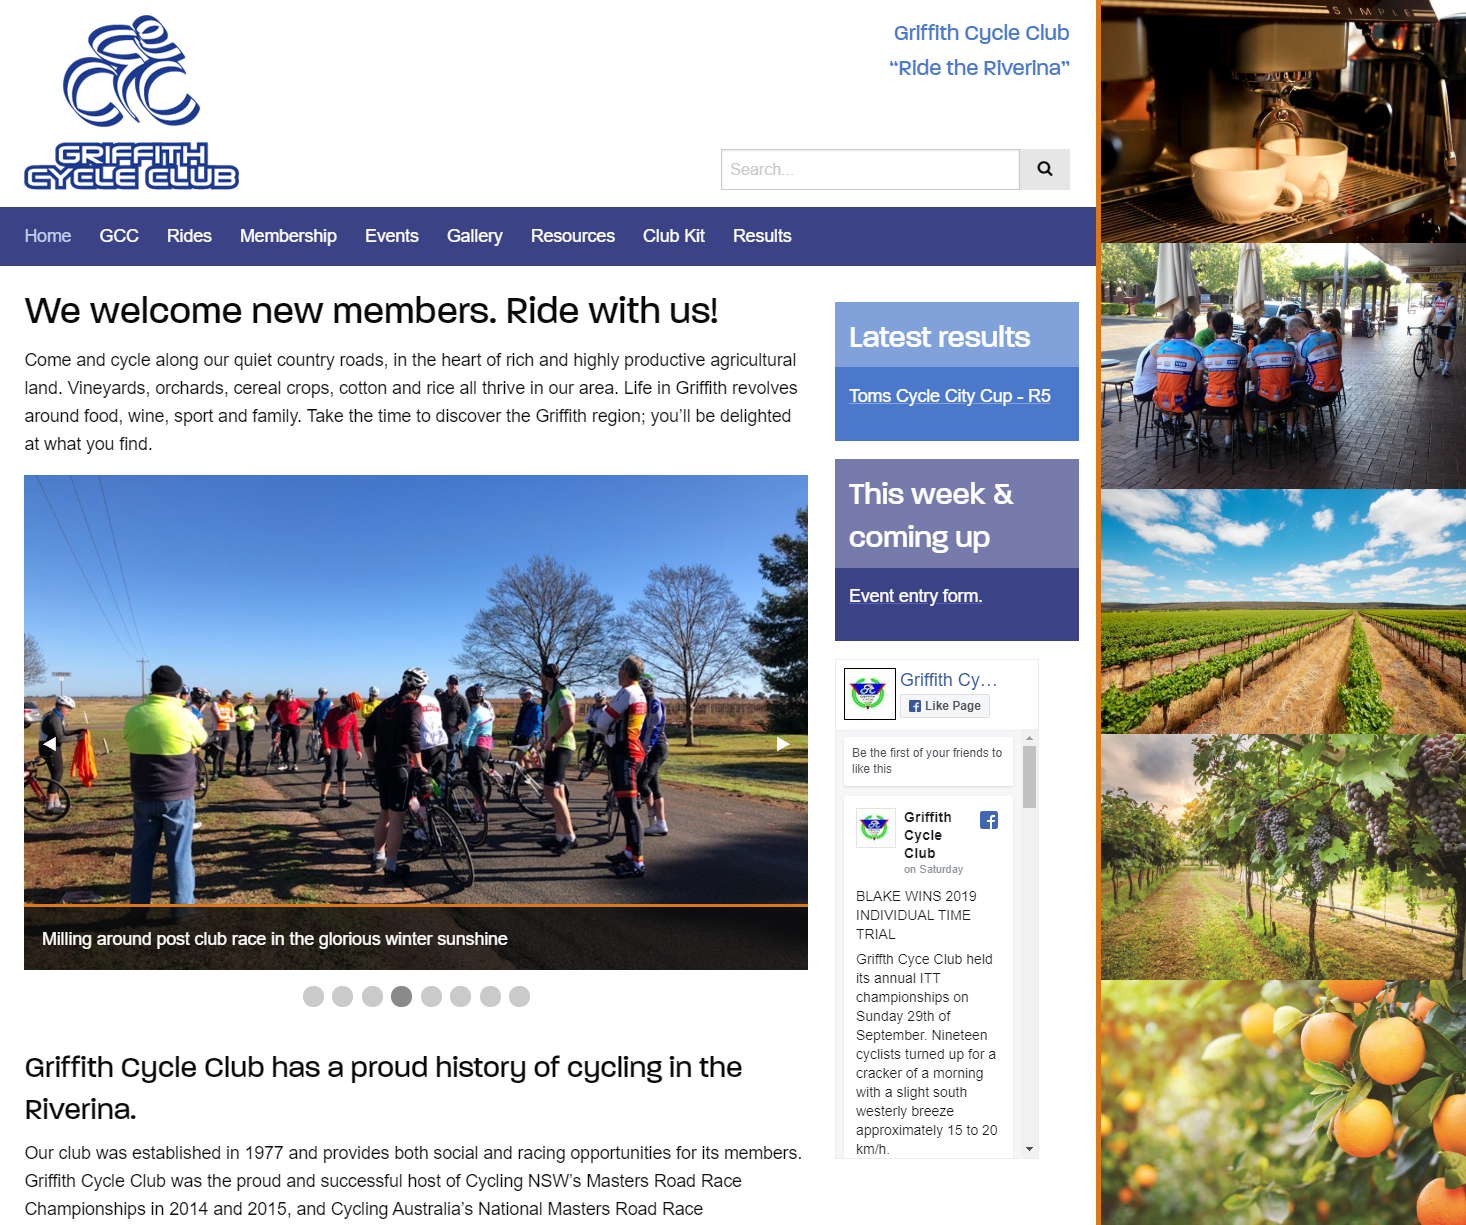 Griffith Cycle Club website